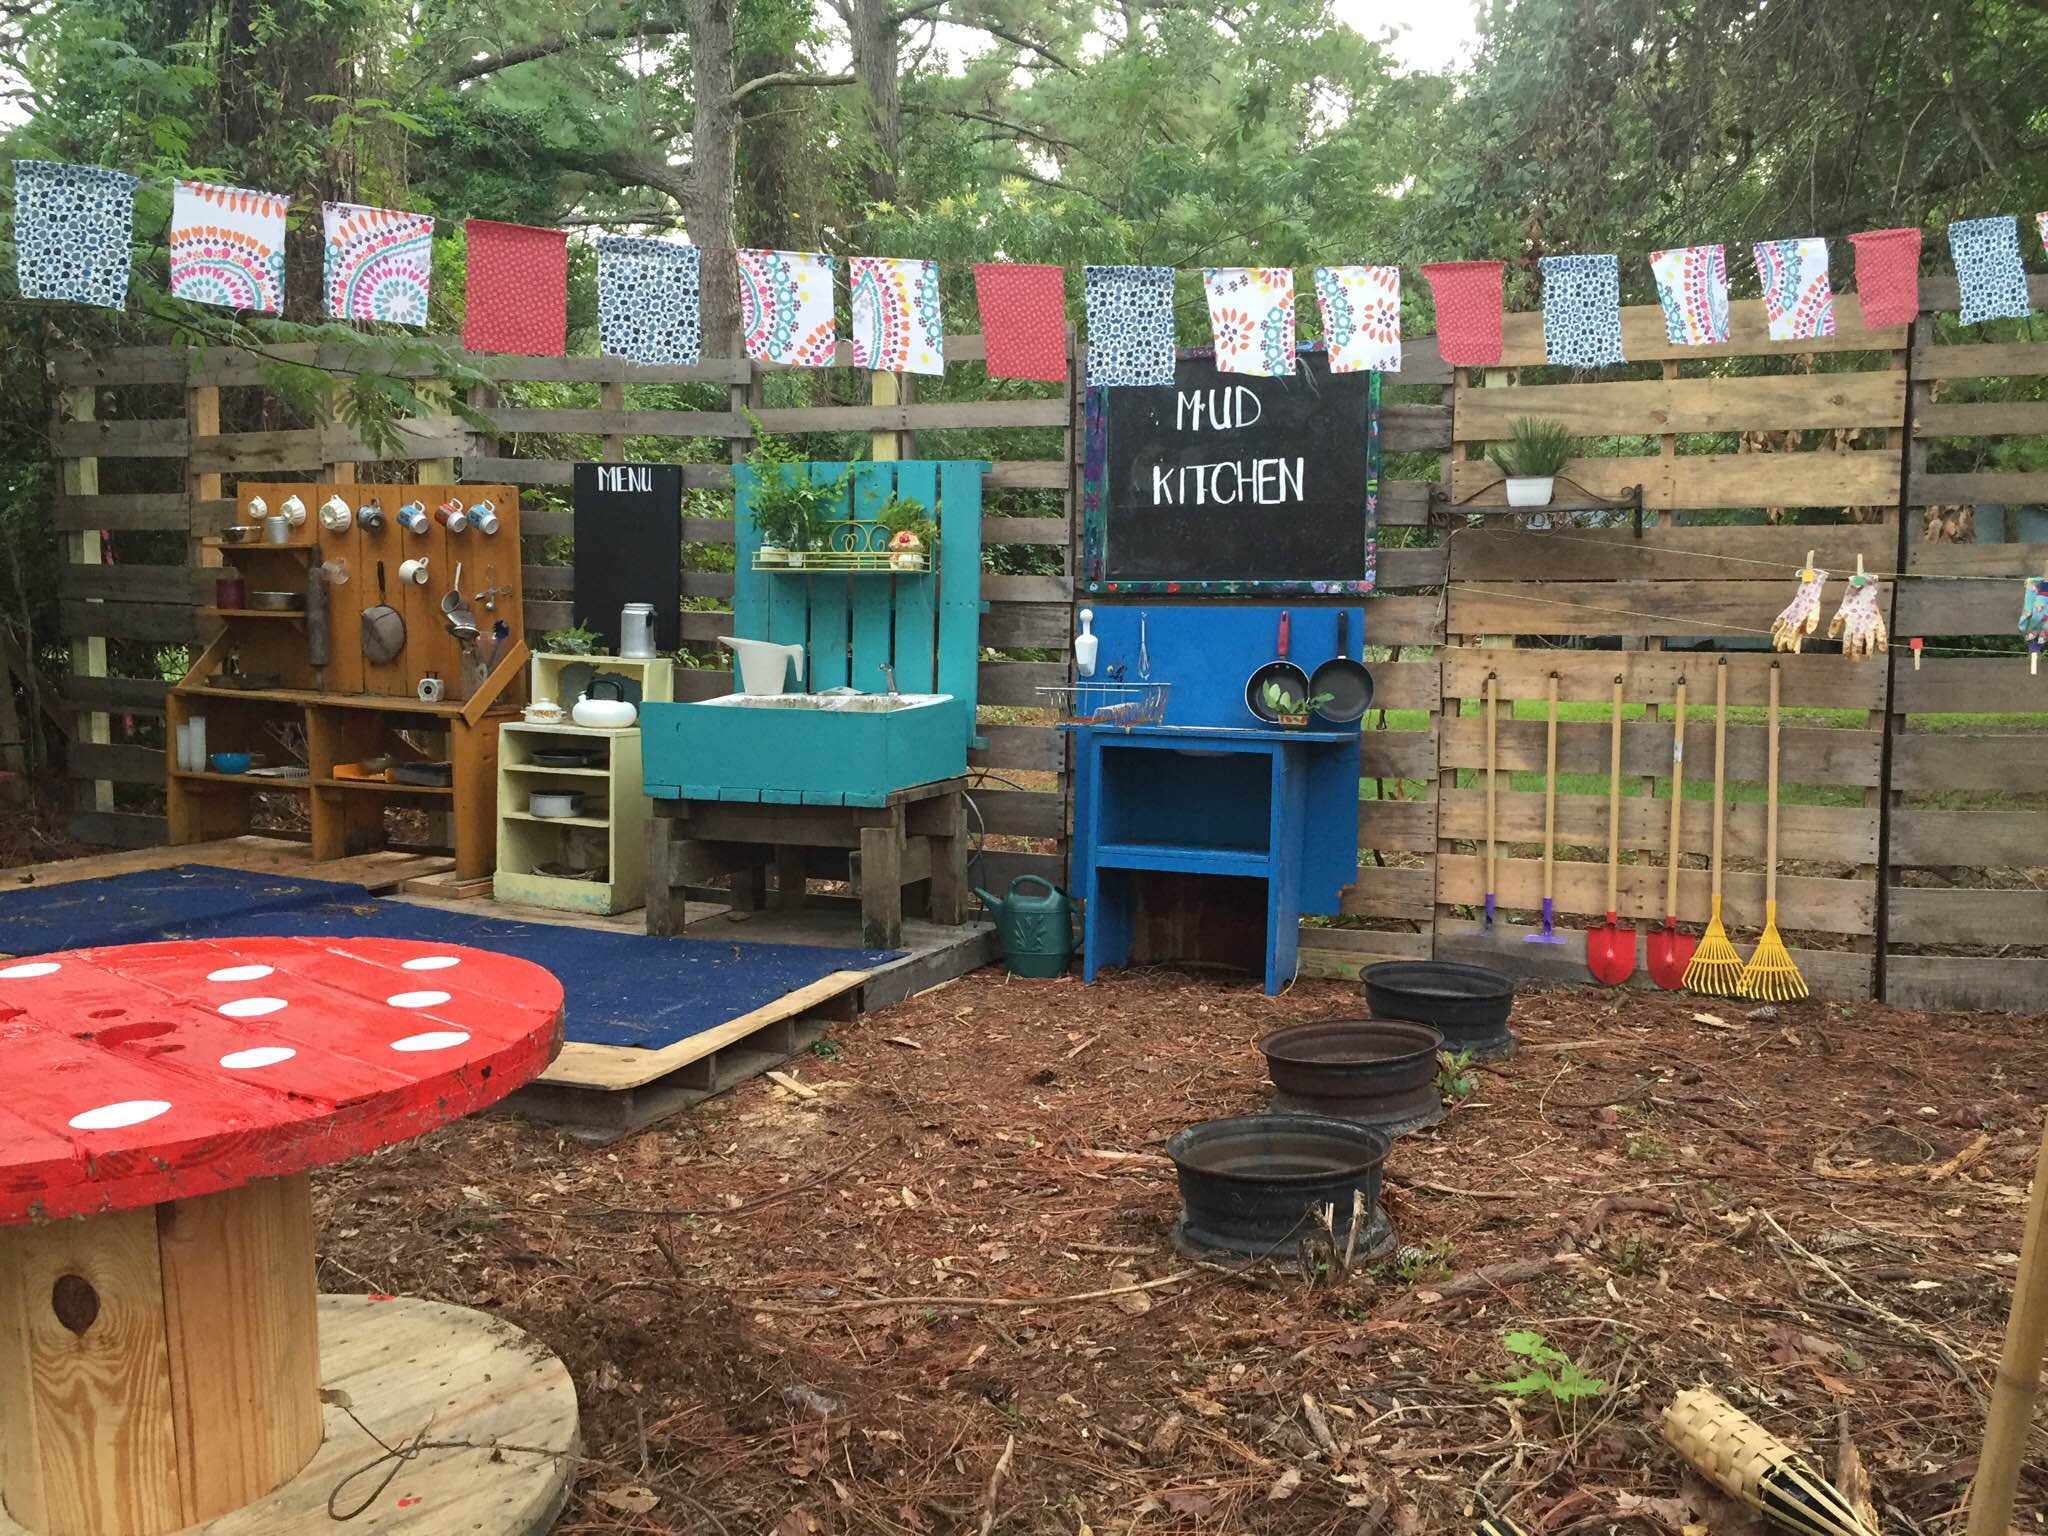 Mud Kitchen constructed by the Shanks family at Wilmington Cooperative School